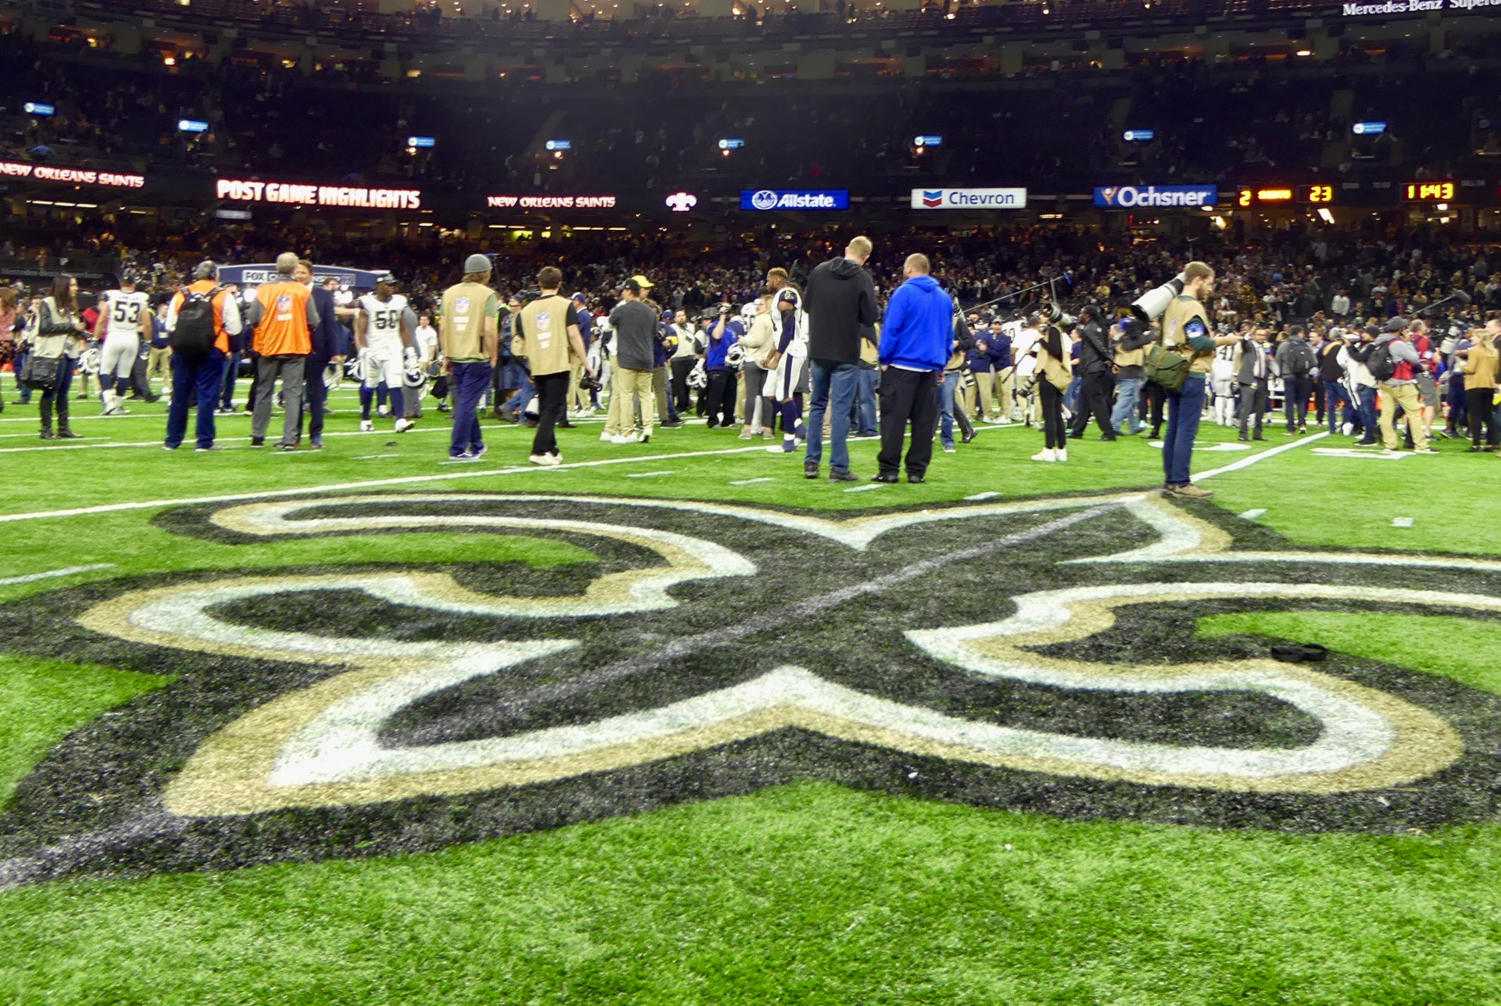 Media+meets+on+the+field+after+the+Saints+loss+in+the+NFC+Championship.+Photo+credit%3A+Olivia+Ledet